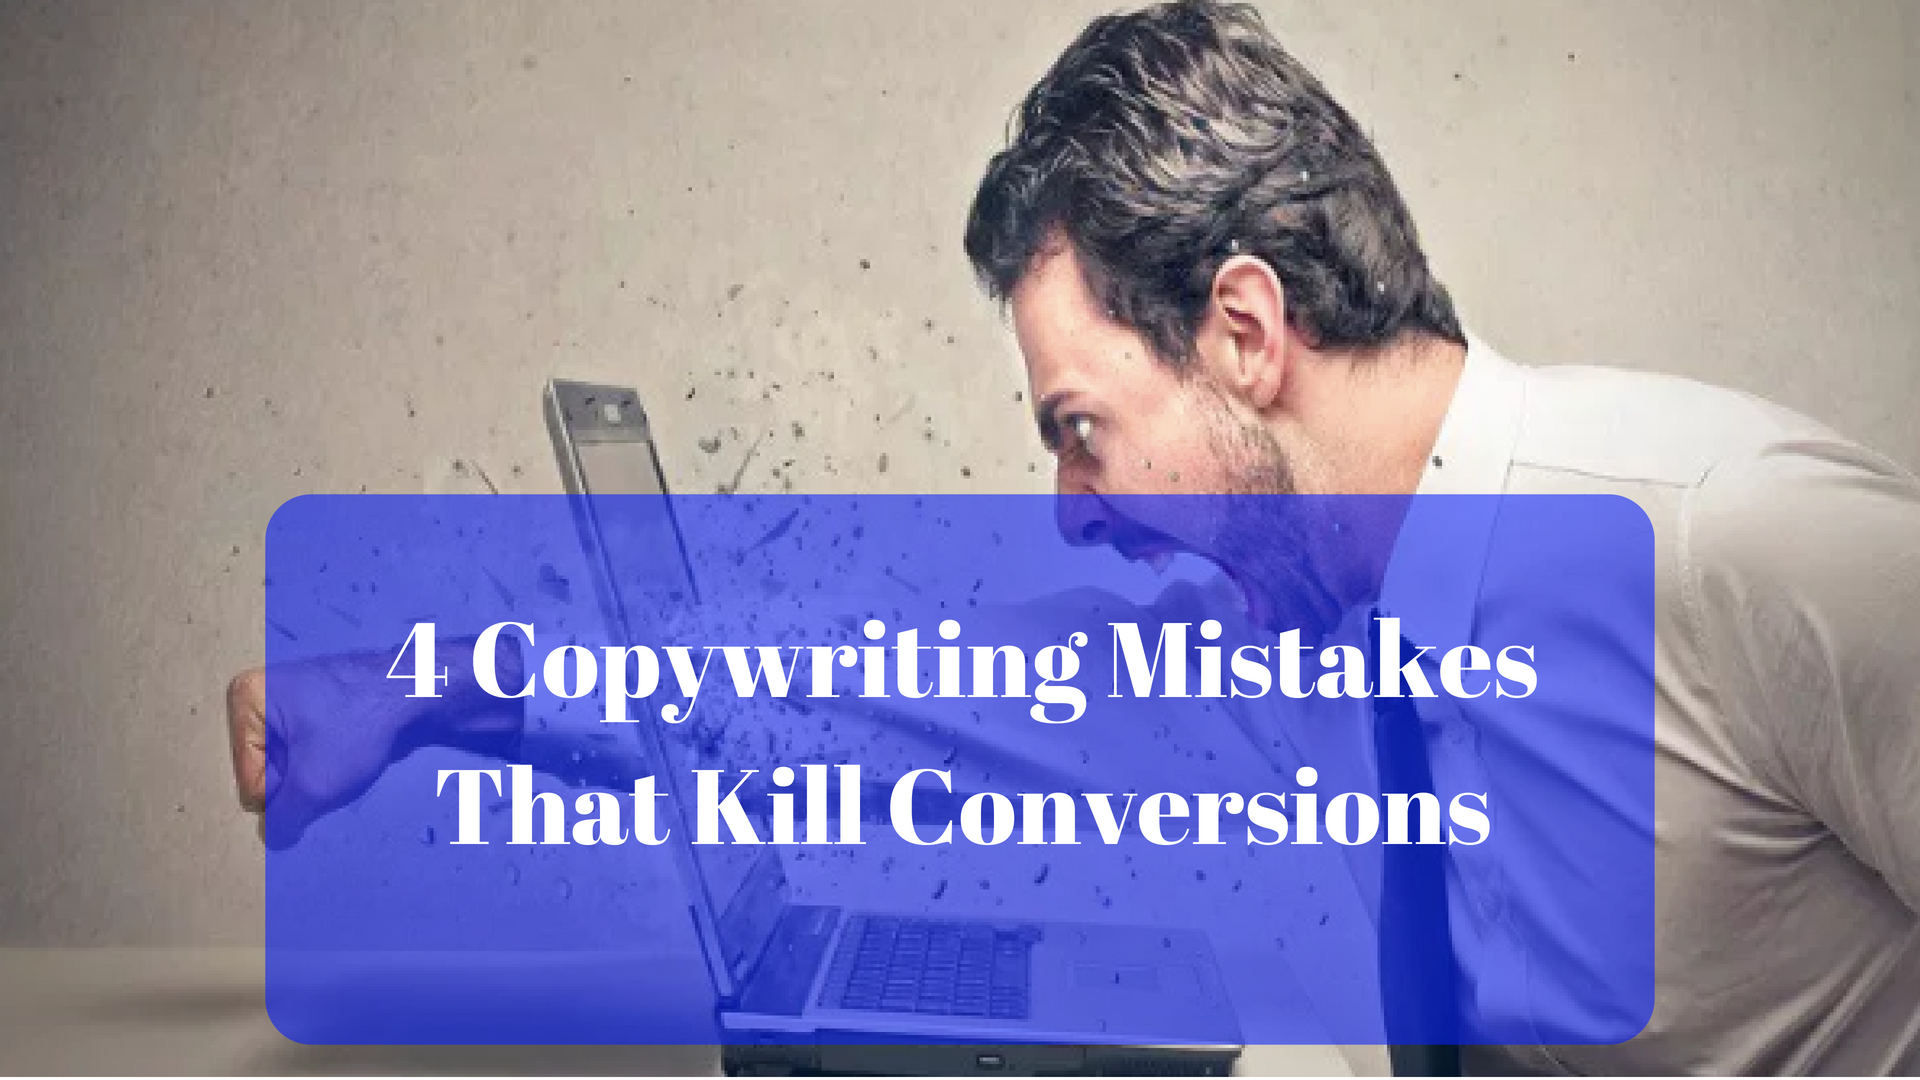 Copywriting mistakes that kill conversions